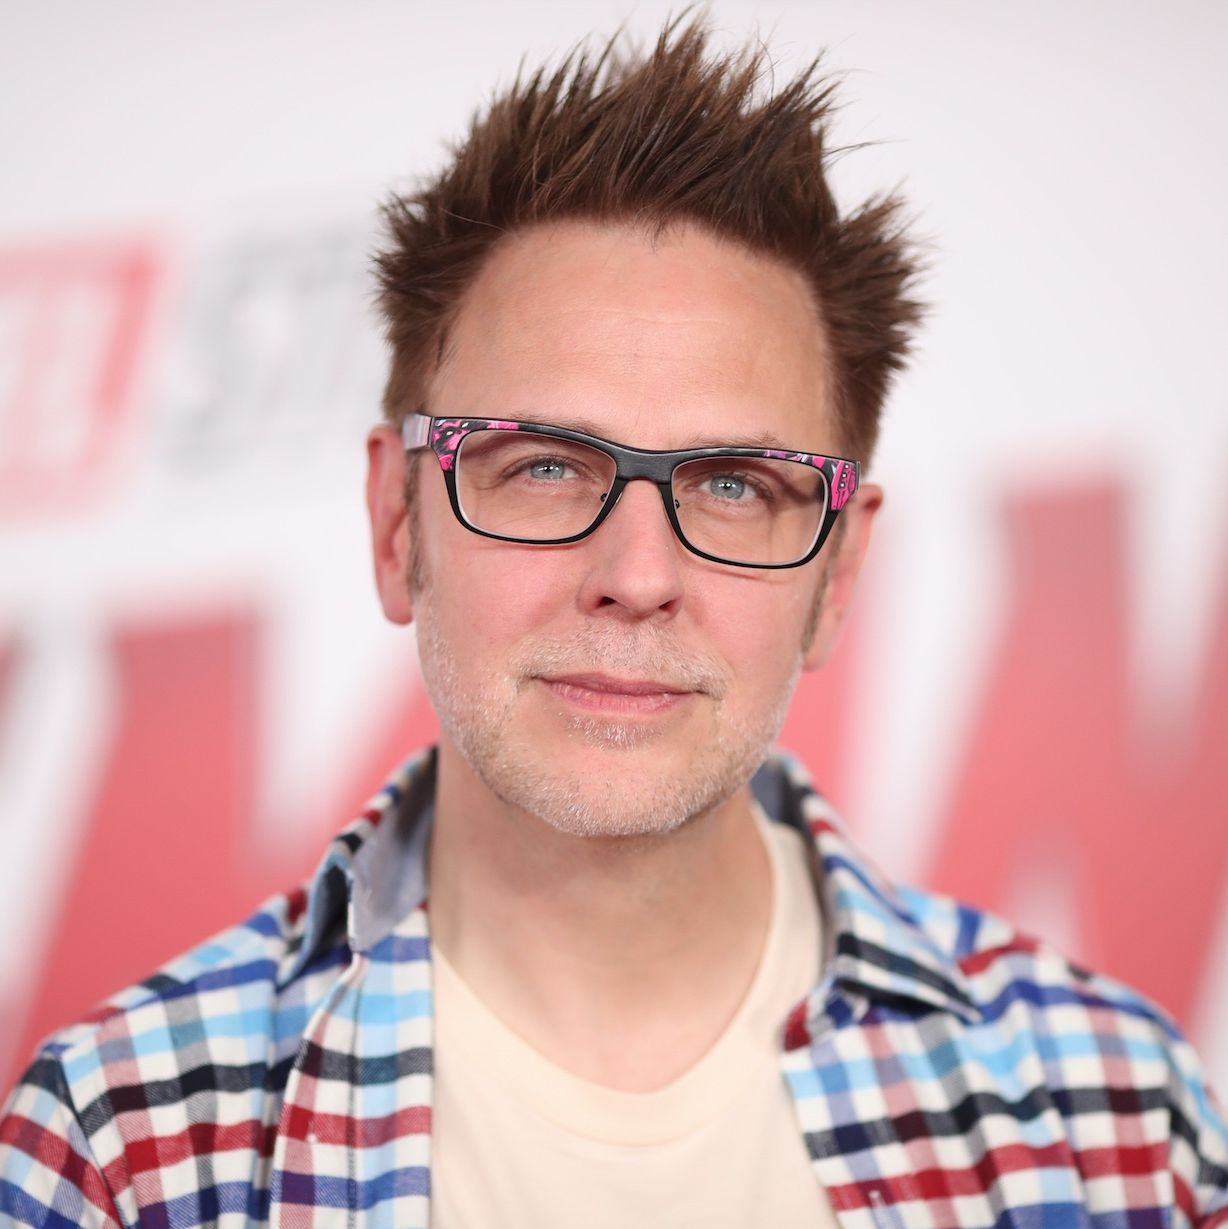 James Gunn breaks silence over Guardians of the Galaxy 3 firing